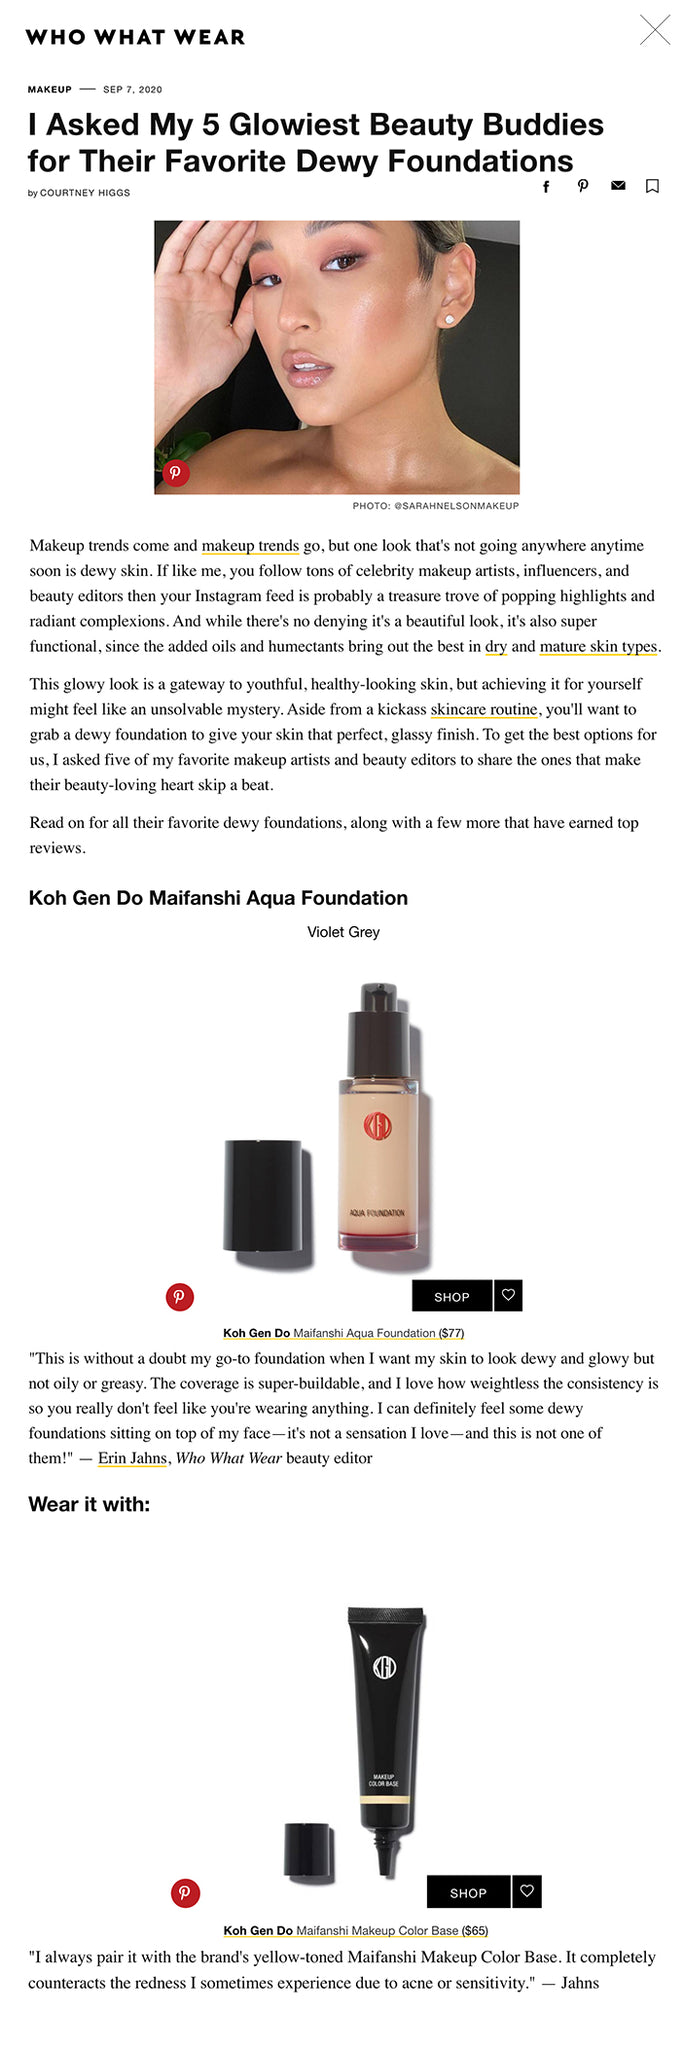 """I Asked My 5 Glowiest Beauty Buddies for Their Favorite Dewy Foundations by COURTNEY HIGGS facebook pinterest email Favorite The TK Best Dewy Foundations, According to Makeup Artists and EditorsPinterest PHOTO: @SARAHNELSONMAKEUP  Makeup trends come and makeup trends go, but one look that's not going anywhere anytime soon is dewy skin. If like me, you follow tons of celebrity makeup artists, influencers, and beauty editors then your Instagram feed is probably a treasure trove of popping highlights and radiant complexions. And while there's no denying it's a beautiful look, it's also super functional, since the added oils and humectants bring out the best in dry and mature skin types.  This glowy look is a gateway to youthful, healthy-looking skin, but achieving it for yourself might feel like an unsolvable mystery. Aside from a kickass skincare routine, you'll want to grab a dewy foundation to give your skin that perfect, glassy finish. To get the best options for us, I asked five of my favorite makeup artists and beauty editors to share the ones that make their beauty-loving heart skip a beat.   Read on for all their favorite dewy foundations, along with a few more that have earned top reviews.  Koh Gen Do Maifanshi Aqua Foundation  Violet Grey Koh Gen Do Maifanshi Aqua FoundationPinterest SHOP Favorite Koh Gen Do Maifanshi Aqua Foundation ($77) """"This is without a doubt my go-to foundation when I want my skin to look dewy and glowy but not oily or greasy. The coverage is super-buildable, and I love how weightless the consistency is so you really don't feel like you're wearing anything. I can definitely feel some dewy foundations sitting on top of my face—it's not a sensation I love—and this is not one of them!"""" — Erin Jahns, Who What Wear beauty editor   Wear it with:  Koh Gen Do Maifanshi Makeup Color BasePinterest SHOP Favorite Koh Gen Do Maifanshi Makeup Color Base ($65) """"I always pair it with the brand's yellow-toned Maifanshi Makeup Color Base. It completely c"""